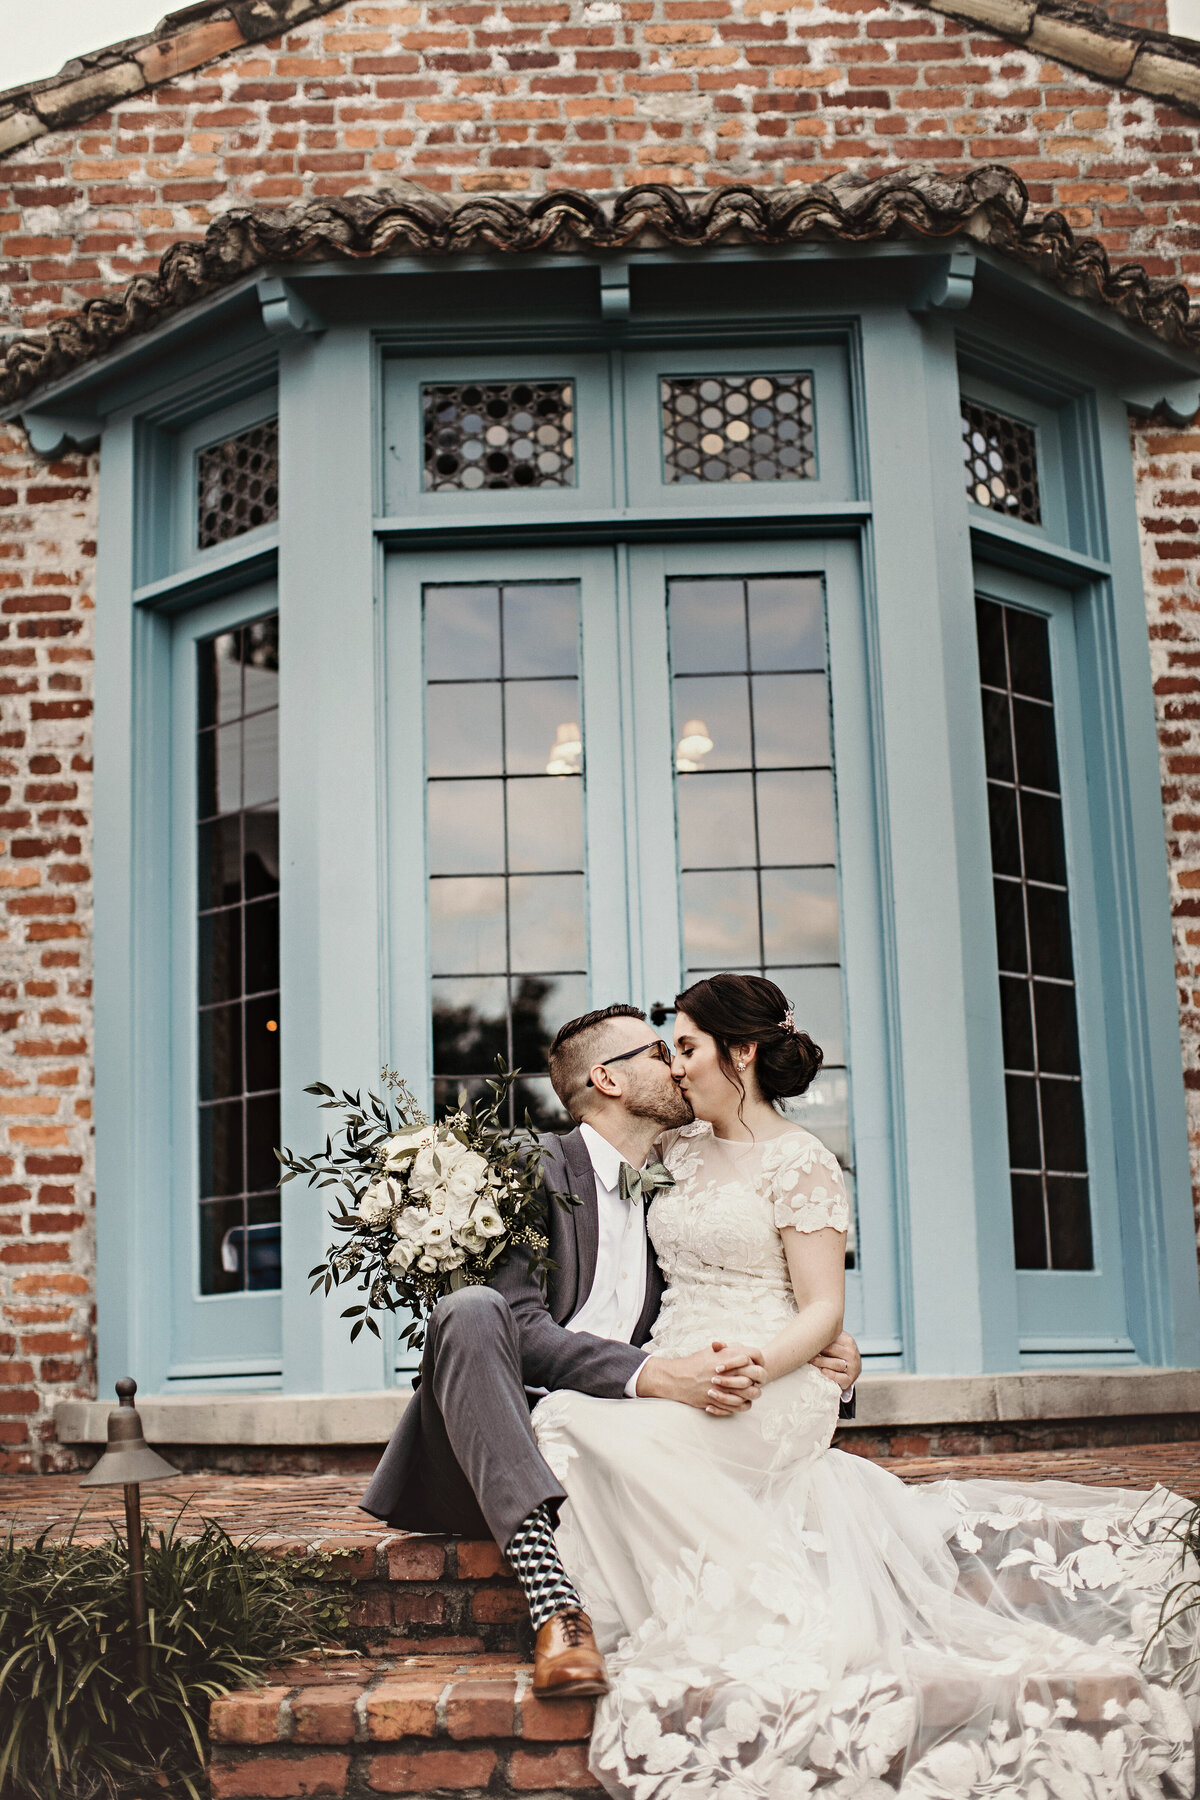 A photograph of the bride and groom embracing and tenderly kissing as they sit on brick steps, showing the bride's train spread out, in front of a picturesque vintage window by Garry & Stacy Photography Co - Clearwater Florida wedding photography